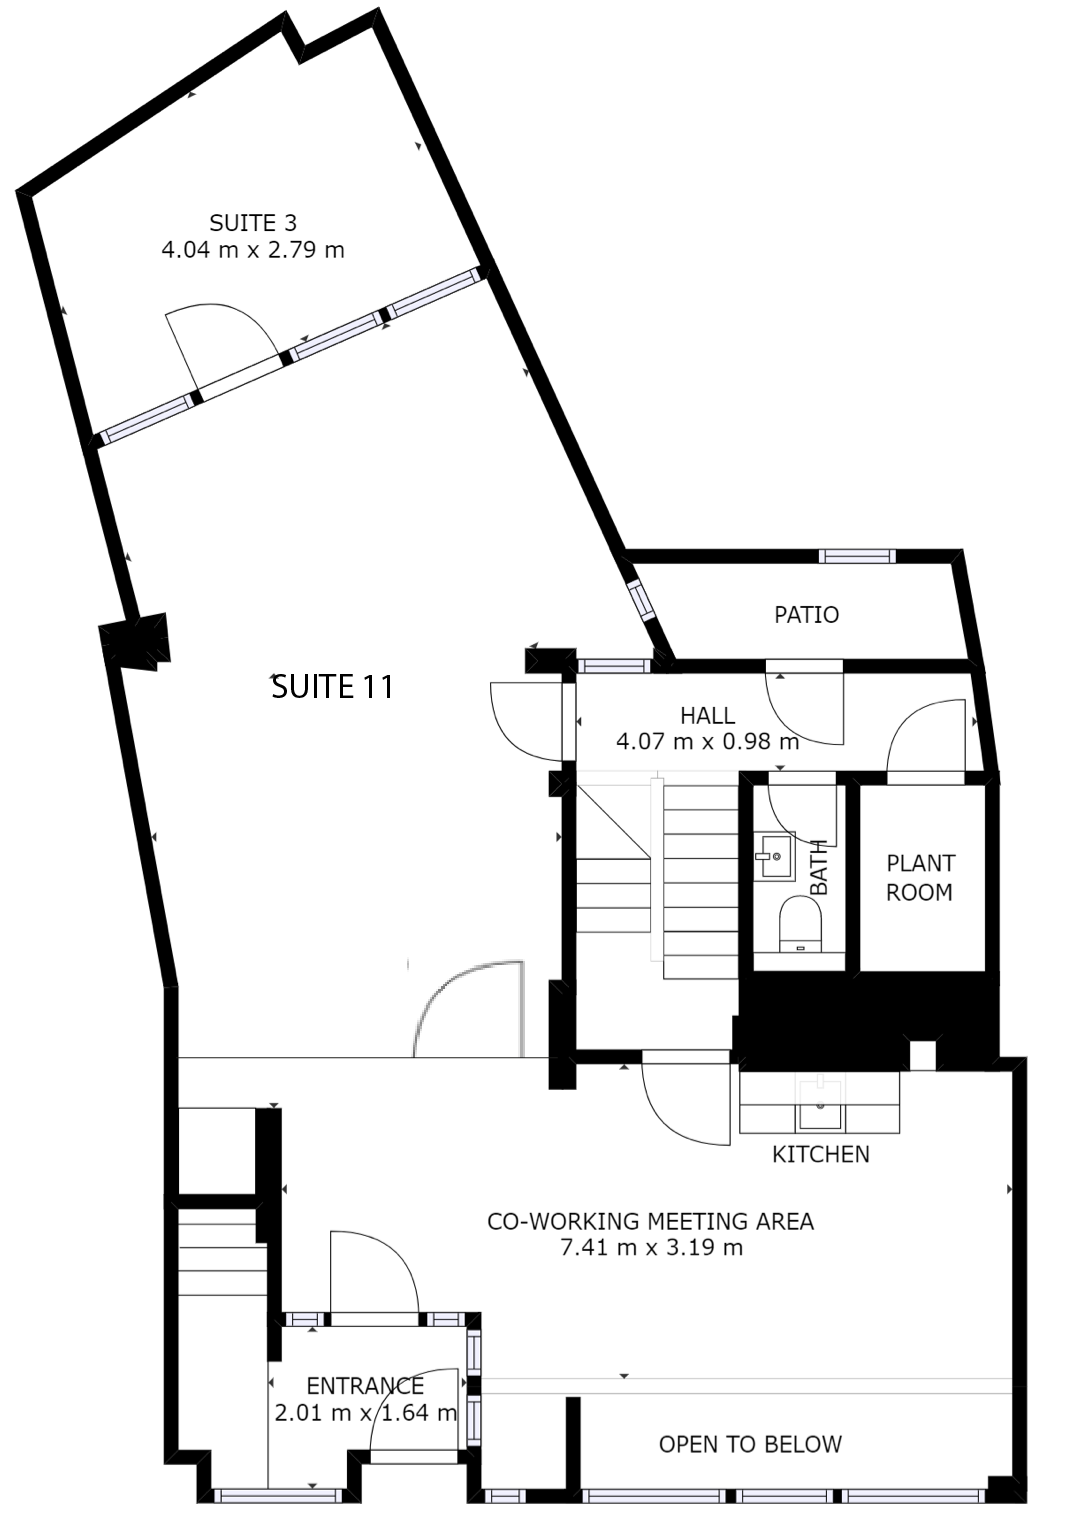 Merchant House Ground floor plan with coworking offices, coworking meeting room and private office suites.